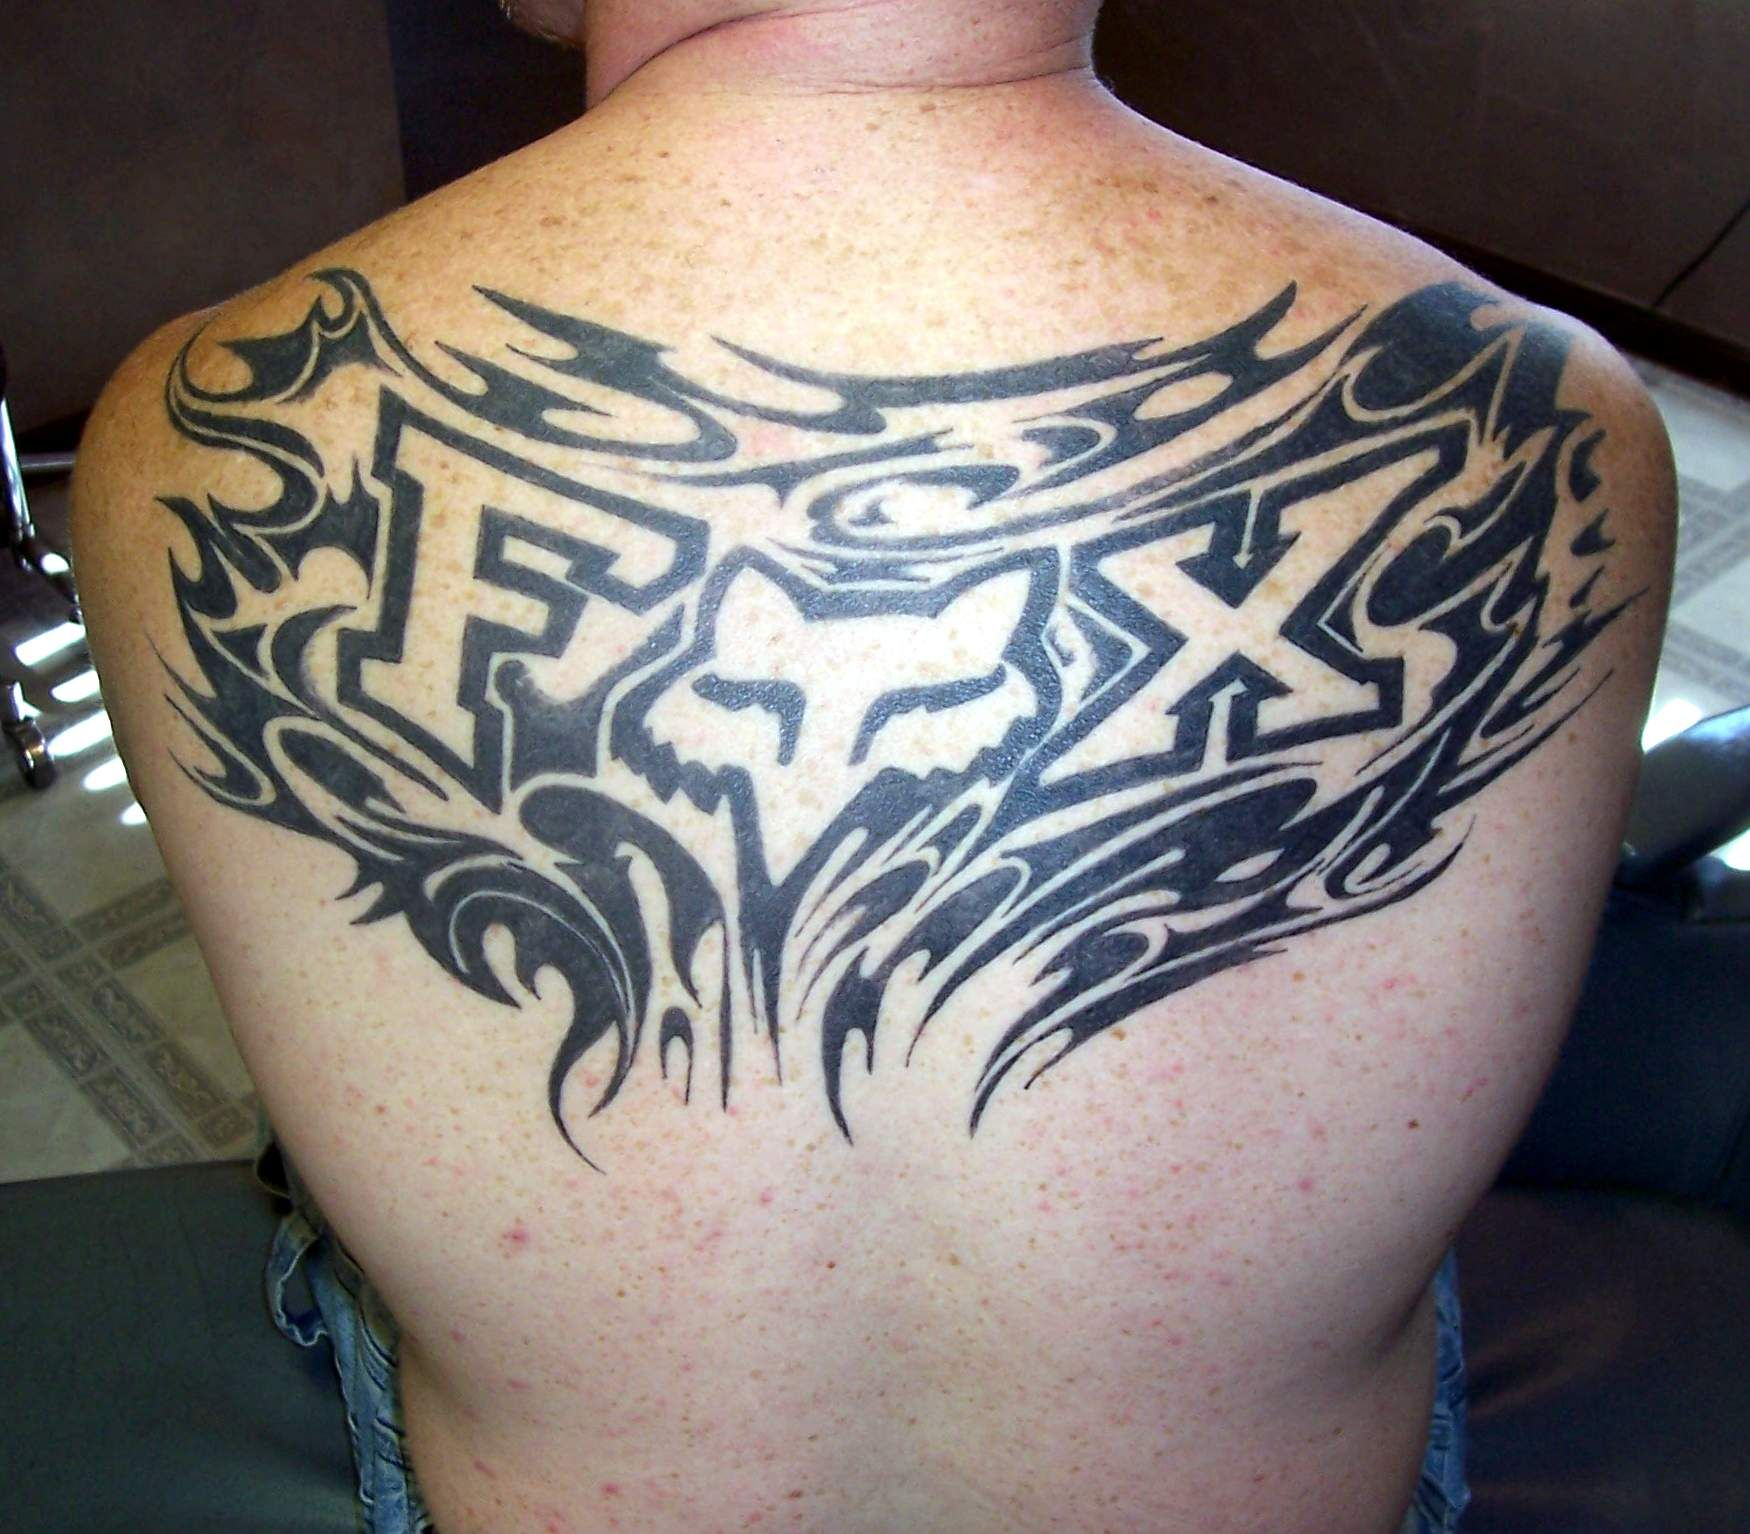 Fox Racing Tattoo Picture Fox Racing Tattoos Tattoos Tattoos For Guys